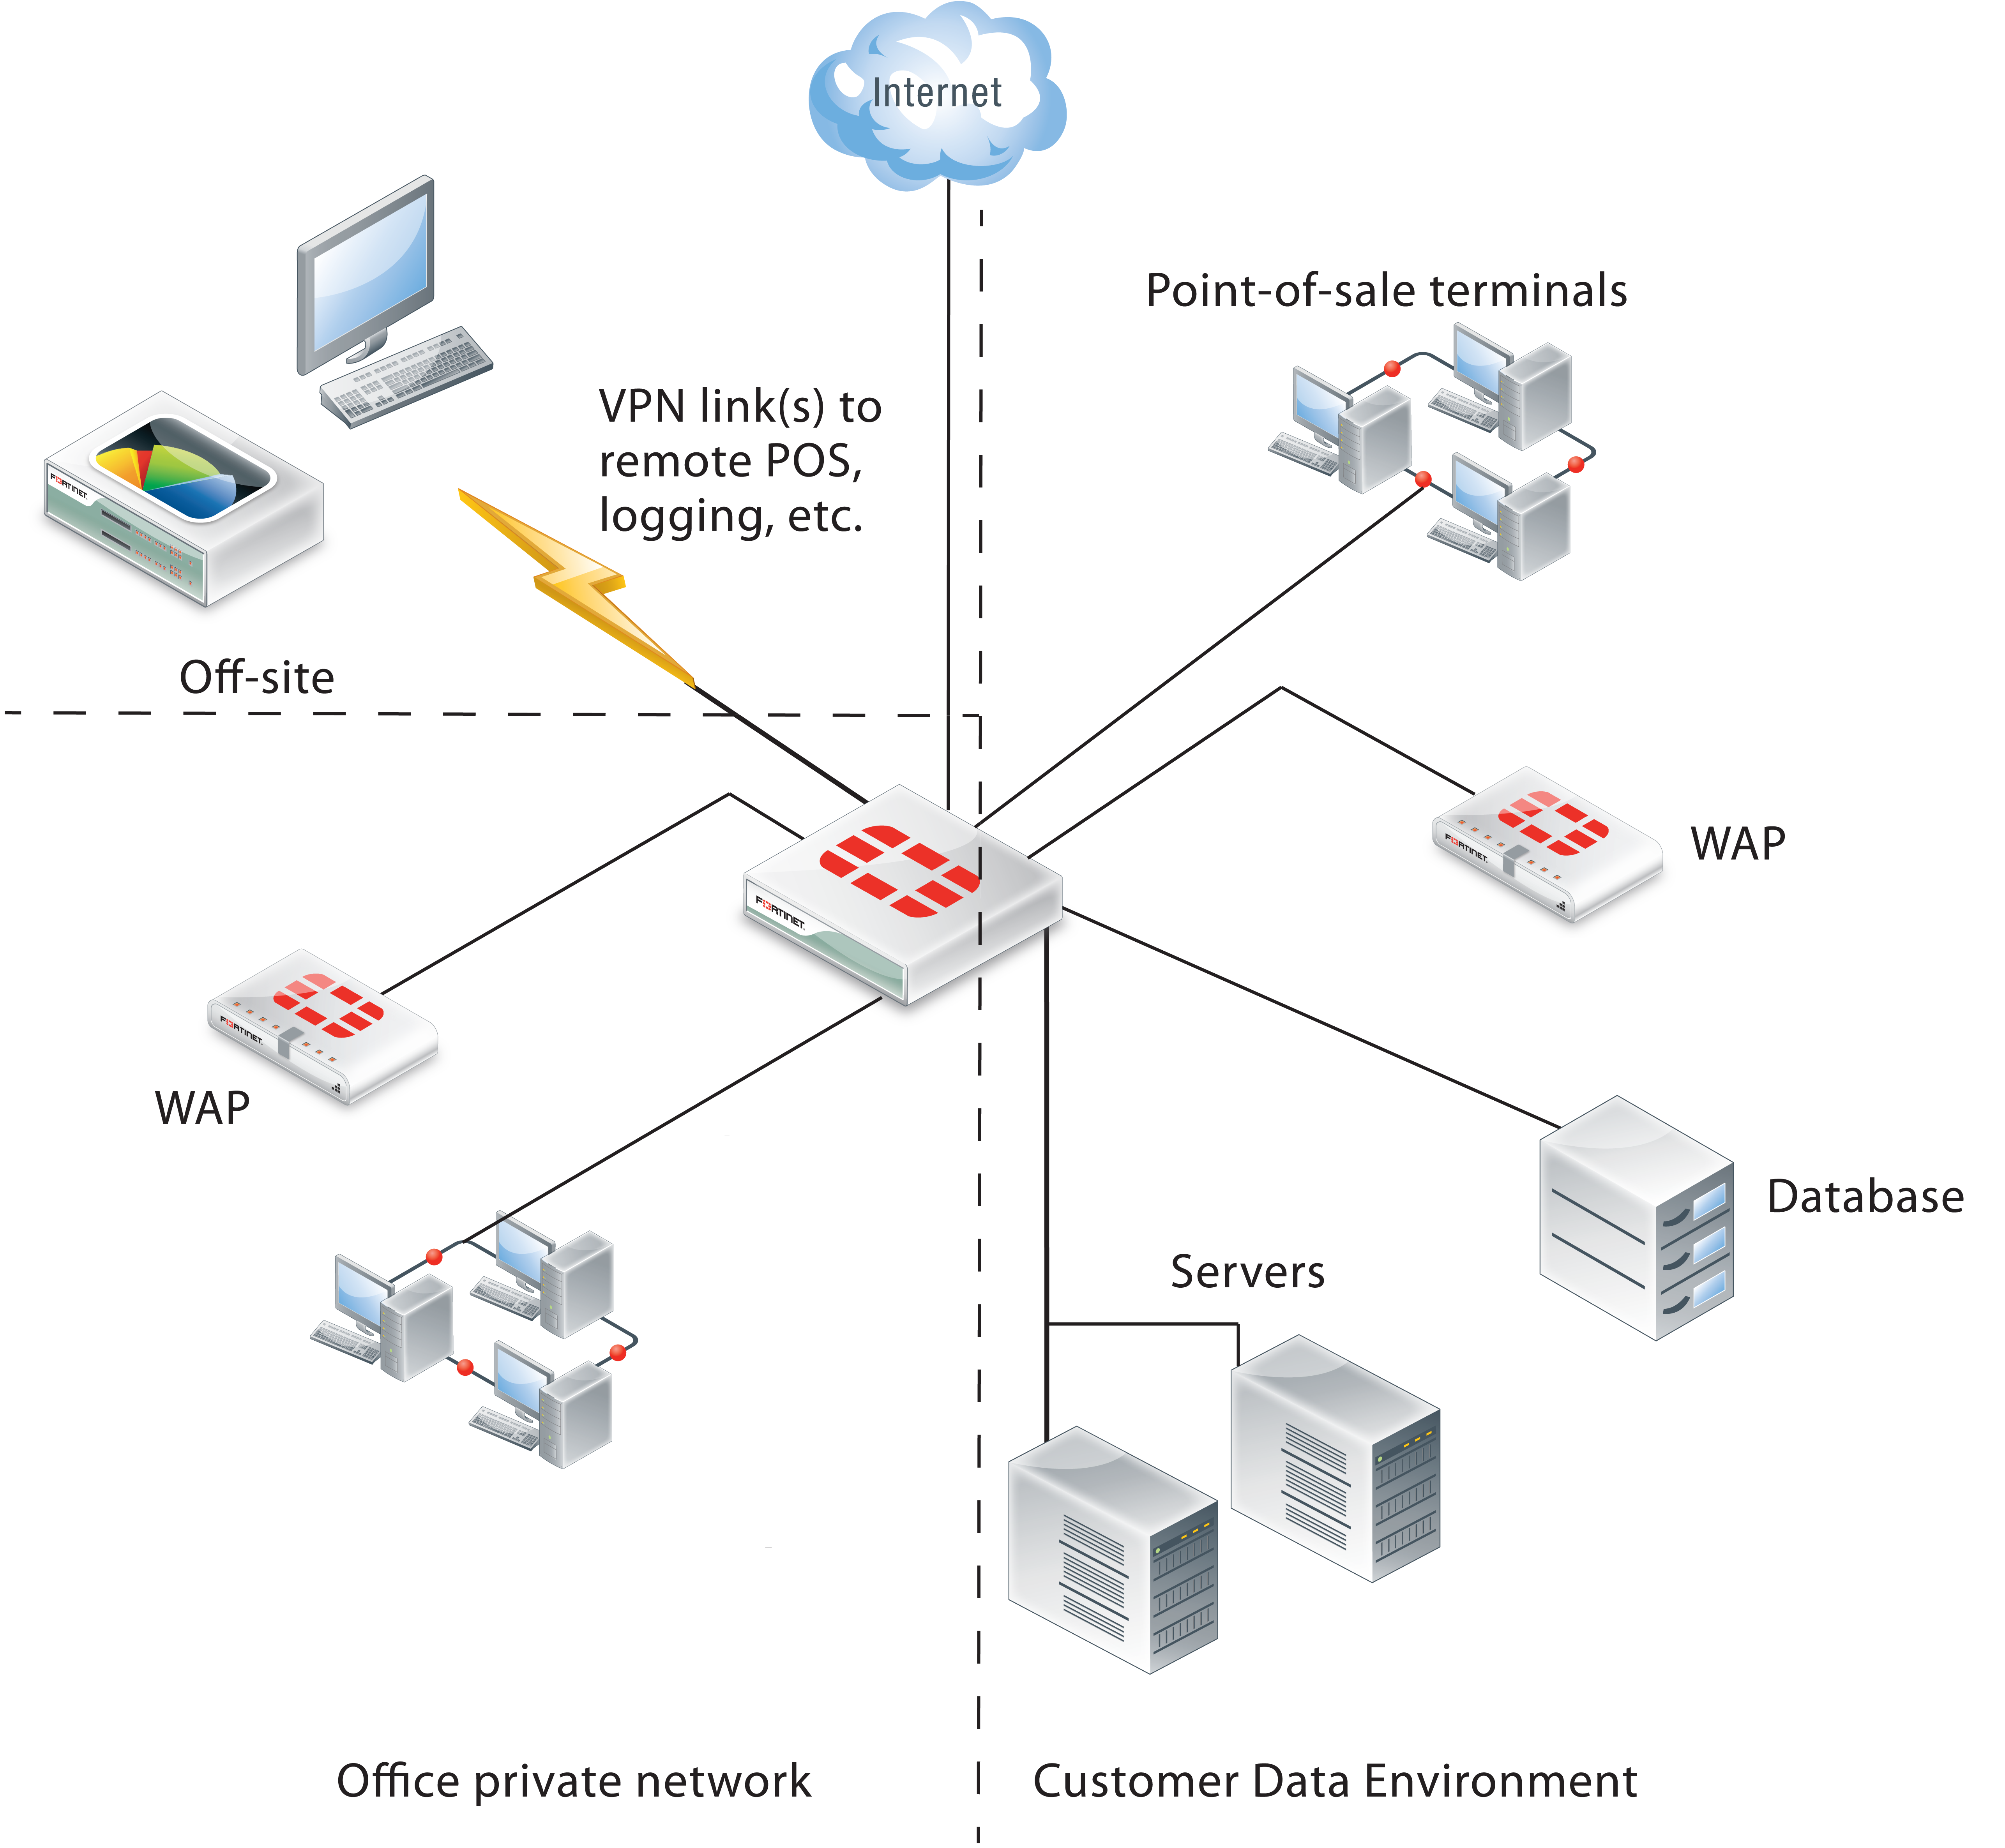 Configuring Fortigate Units For Pci Dss Compliance Dialup Internet Connection Diagram Medical Alert Systems Enterprise Network With A Cardholder Data Environment